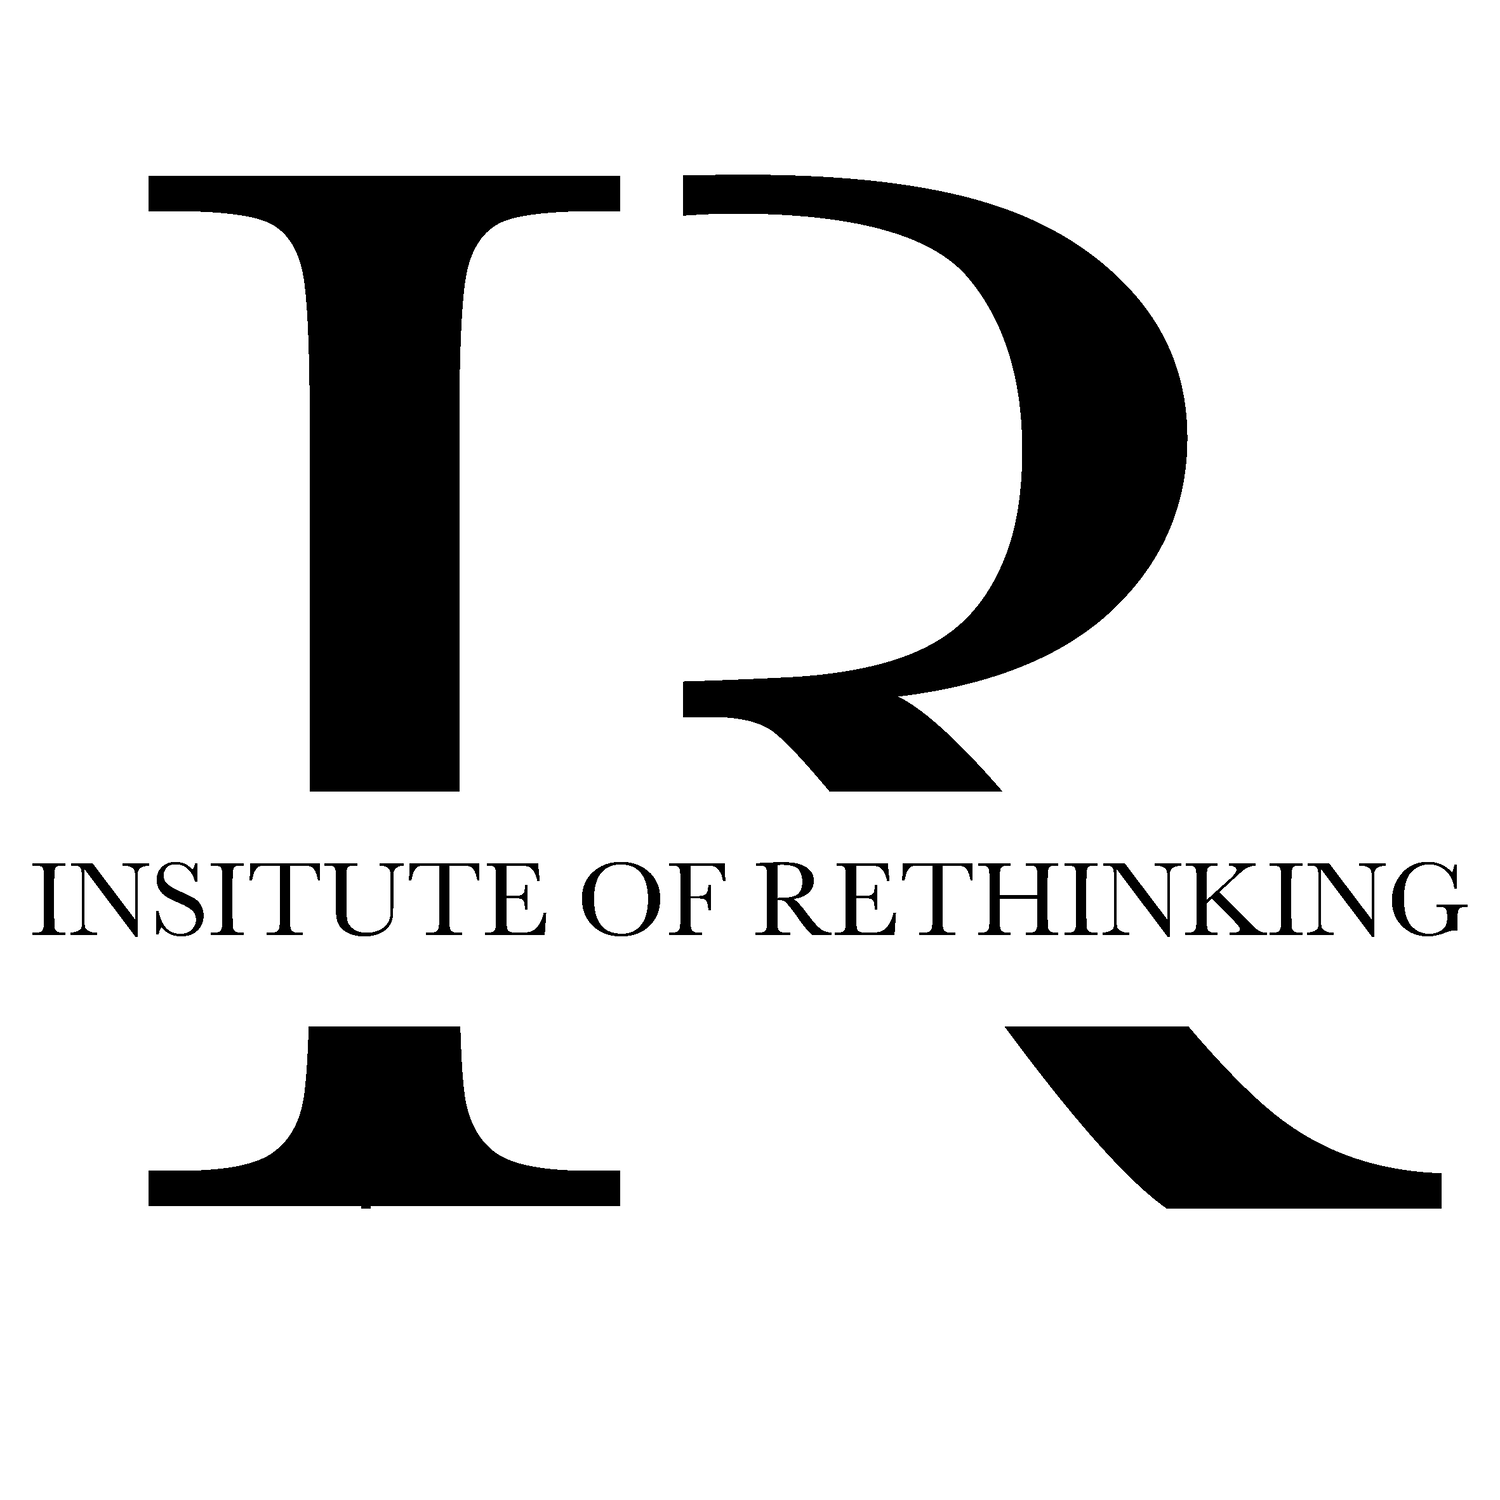 The Institute of Rethinking